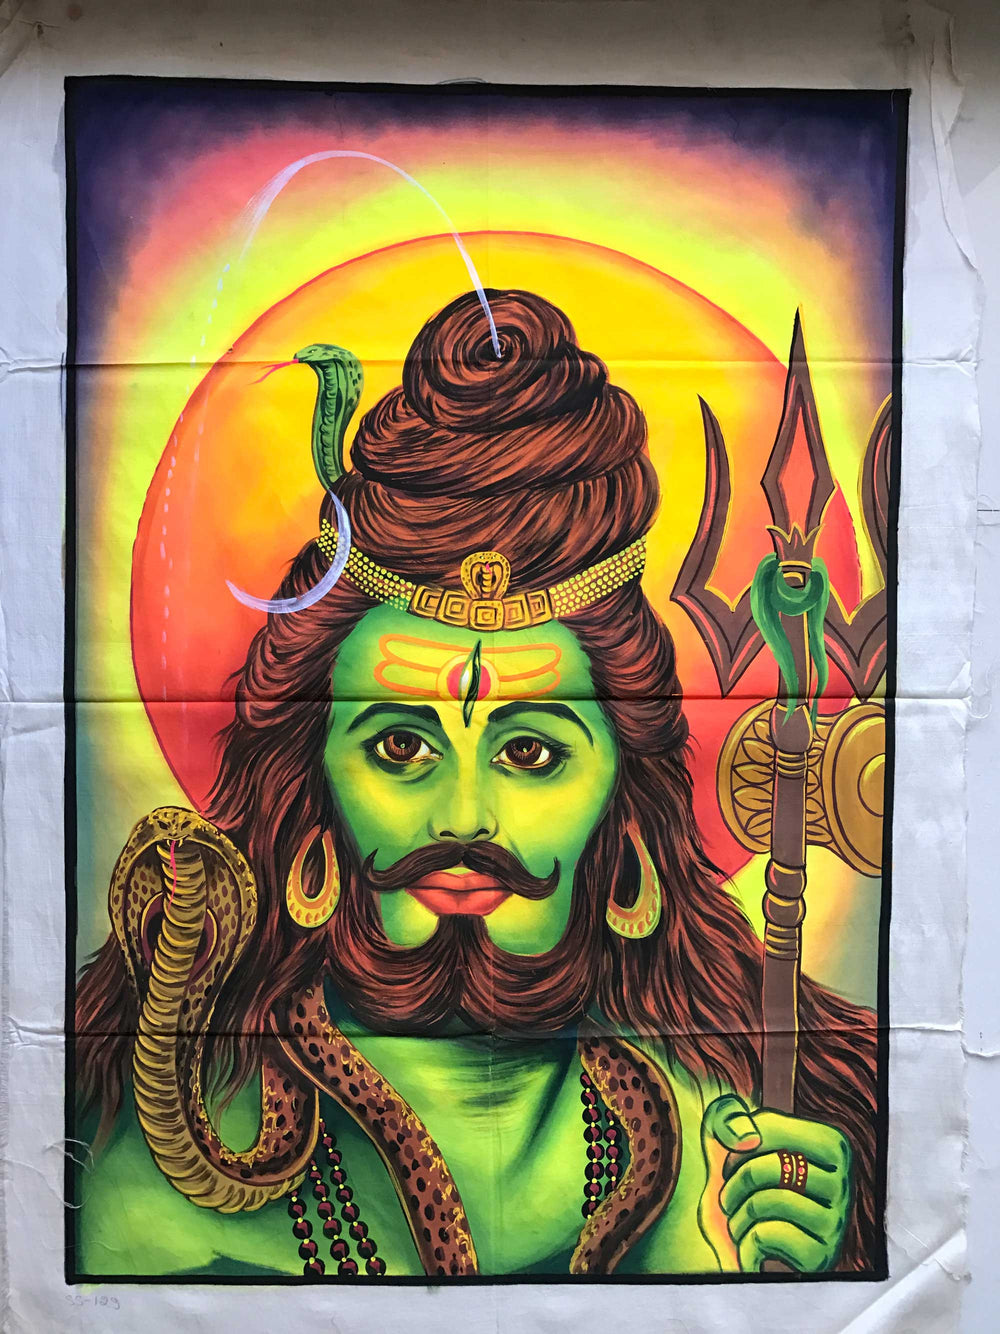 UV Glow Lord Shiva Mustache painting made from fluorescent colors